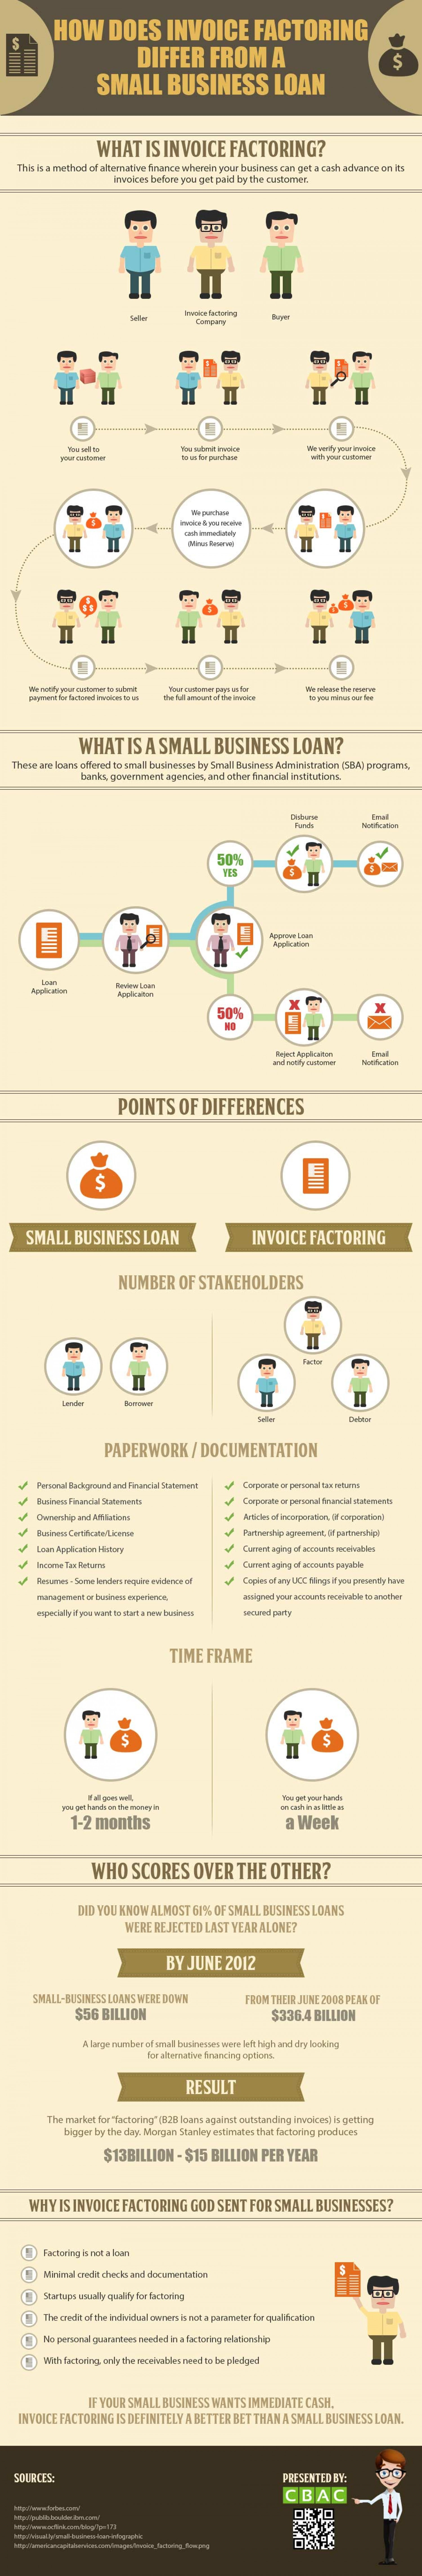 How does invoice factoring differ from a small business loan